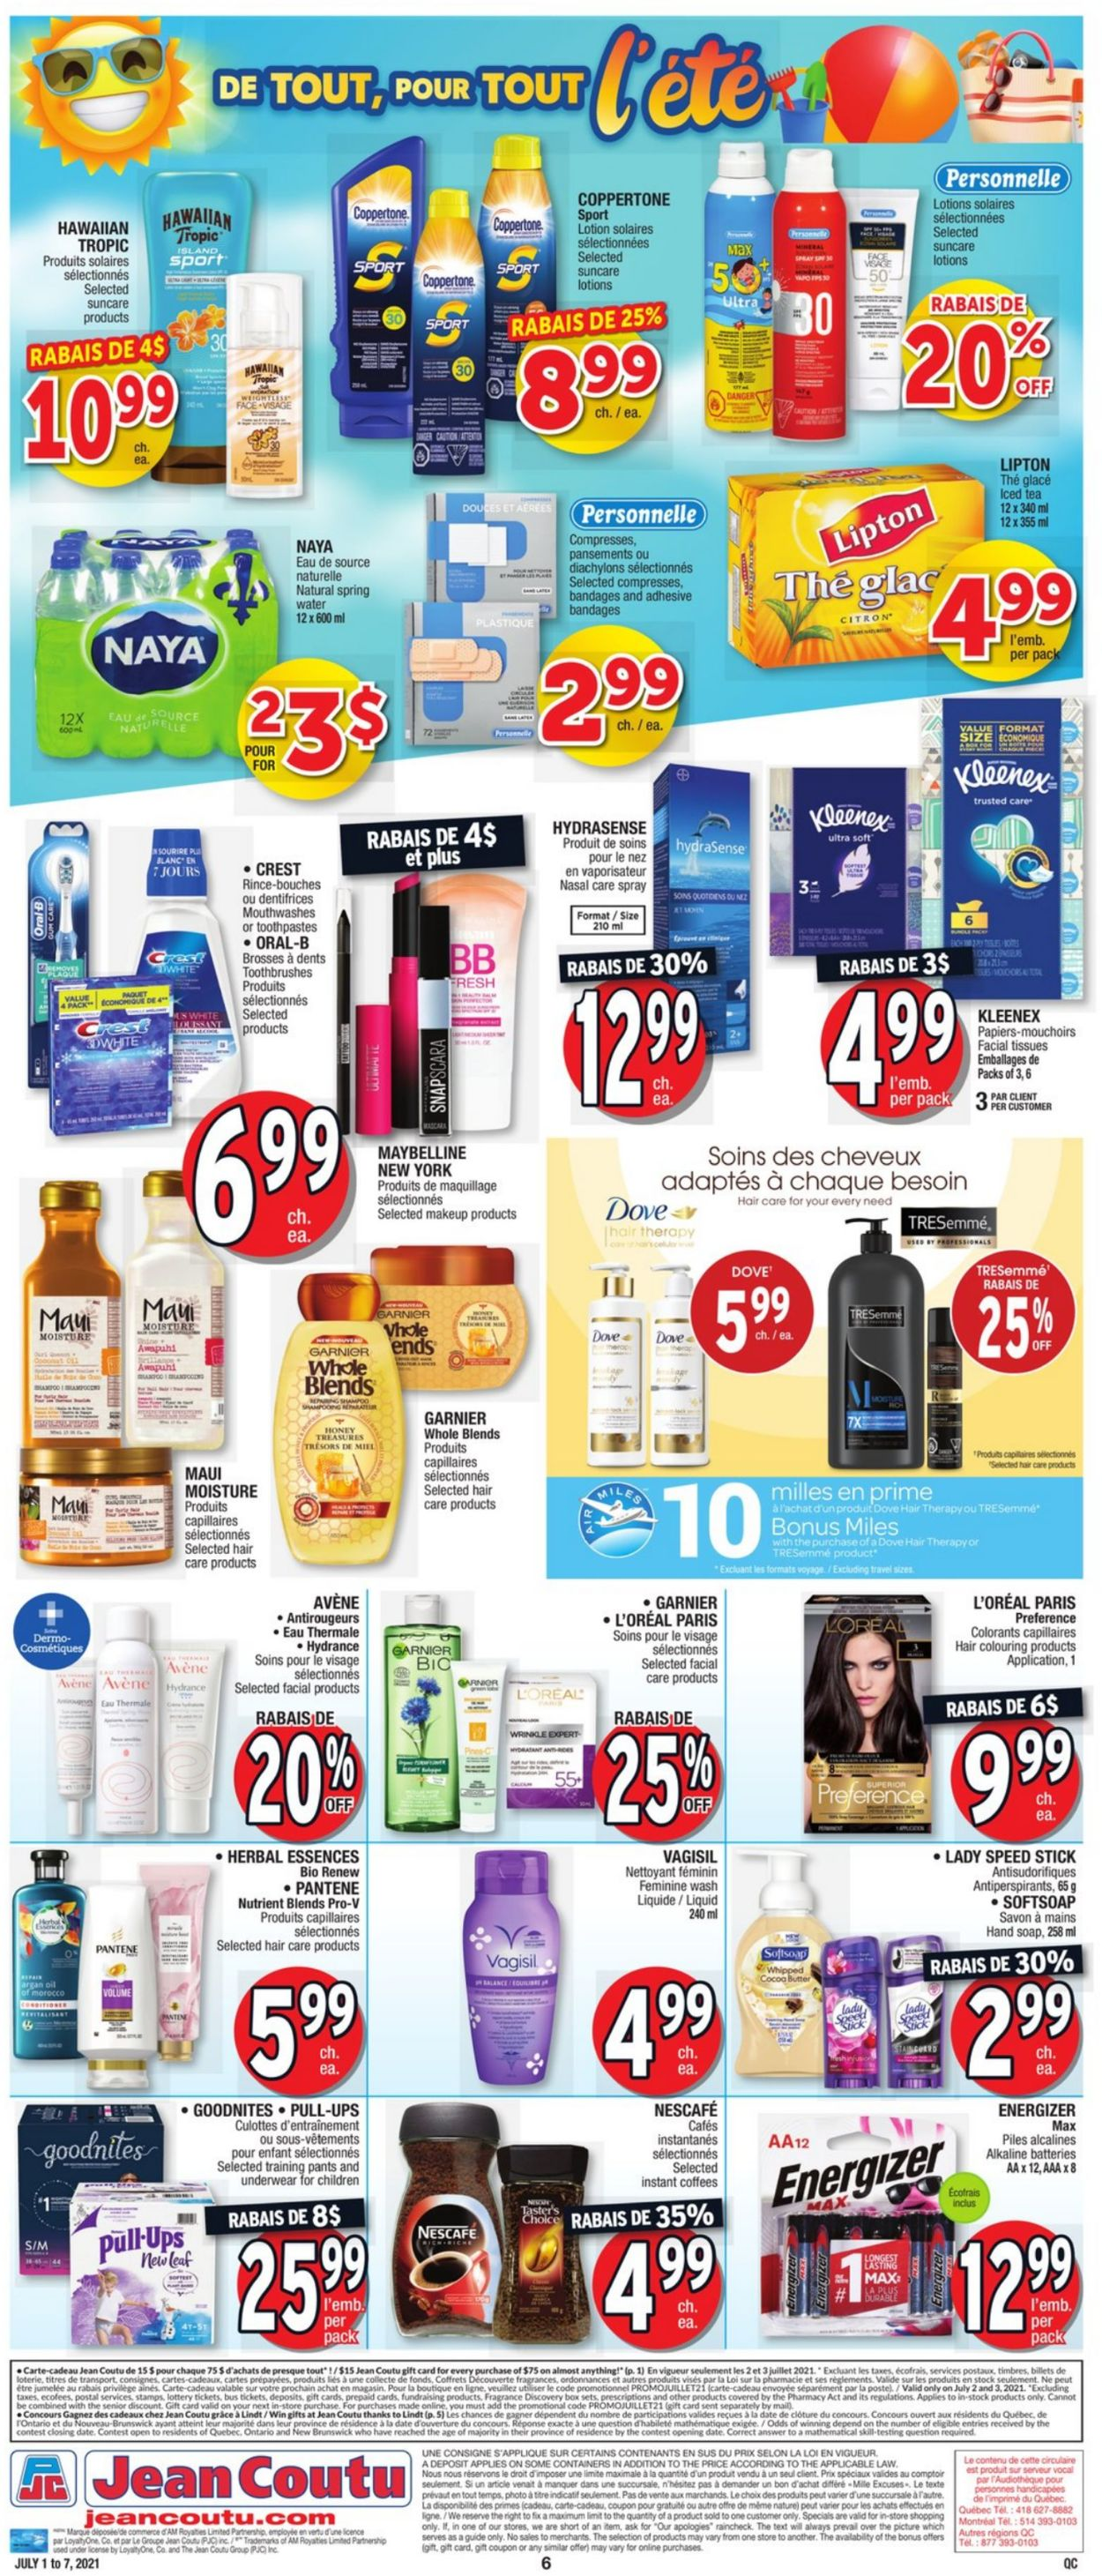 Jean Coutu Flyer - 07/01-07/07/2021 (Page 7)